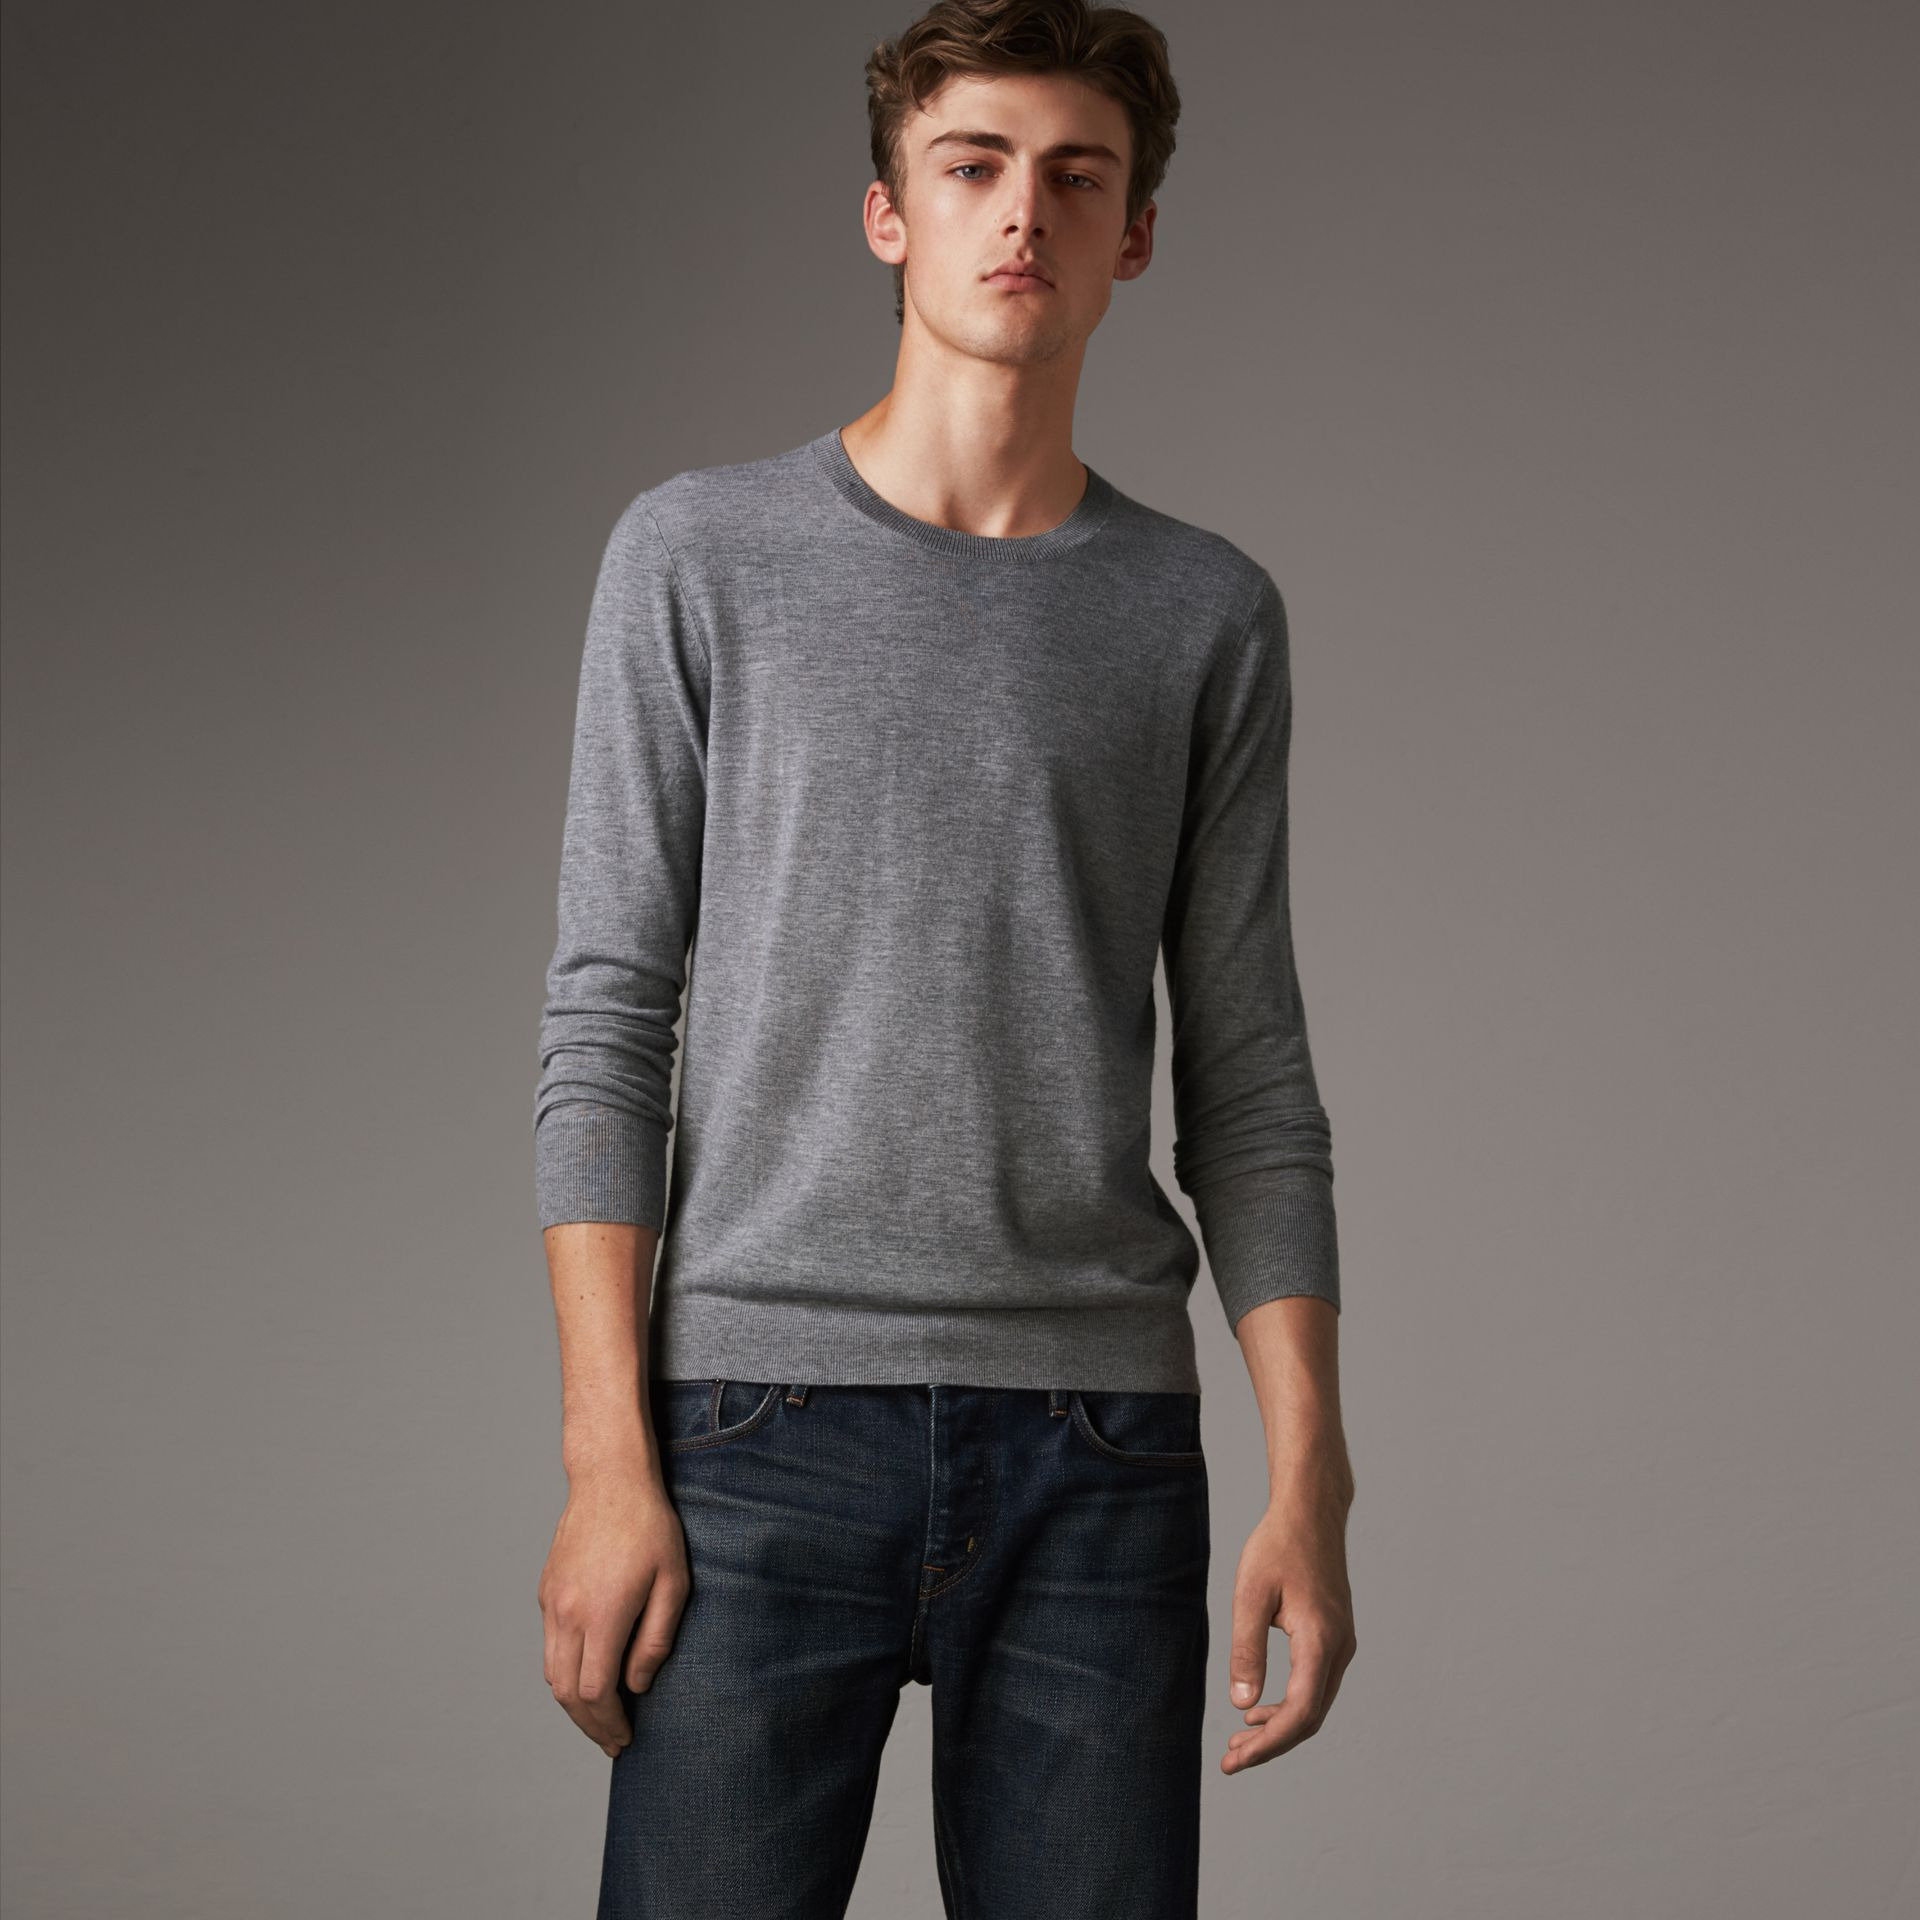 Check Jacquard Detail Cashmere Sweater in Pale Grey Melange - Men | Burberry Canada - gallery image 0